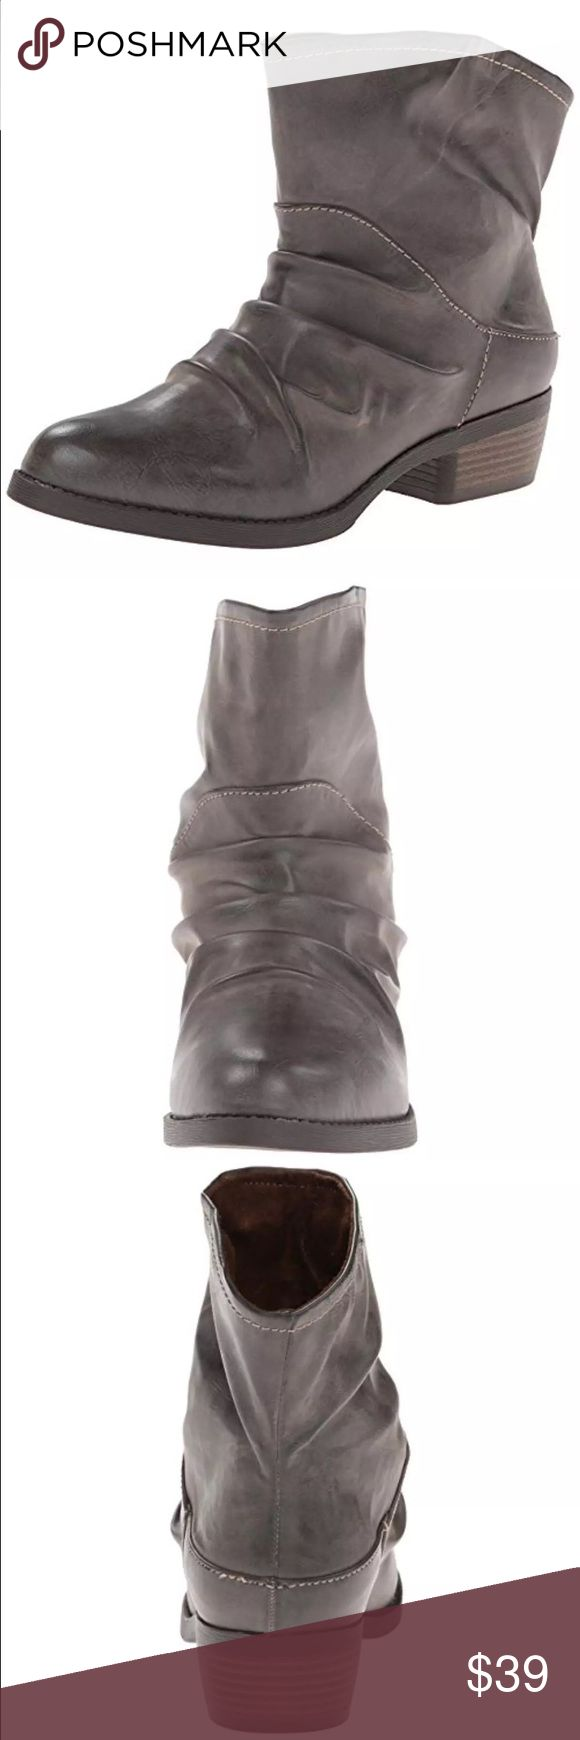 Jellypop Slouchy Boots! NIB! Brown/taupe. Live pics coming soon. NEW in box. Jellypop Shoes Ankle Boots & Booties